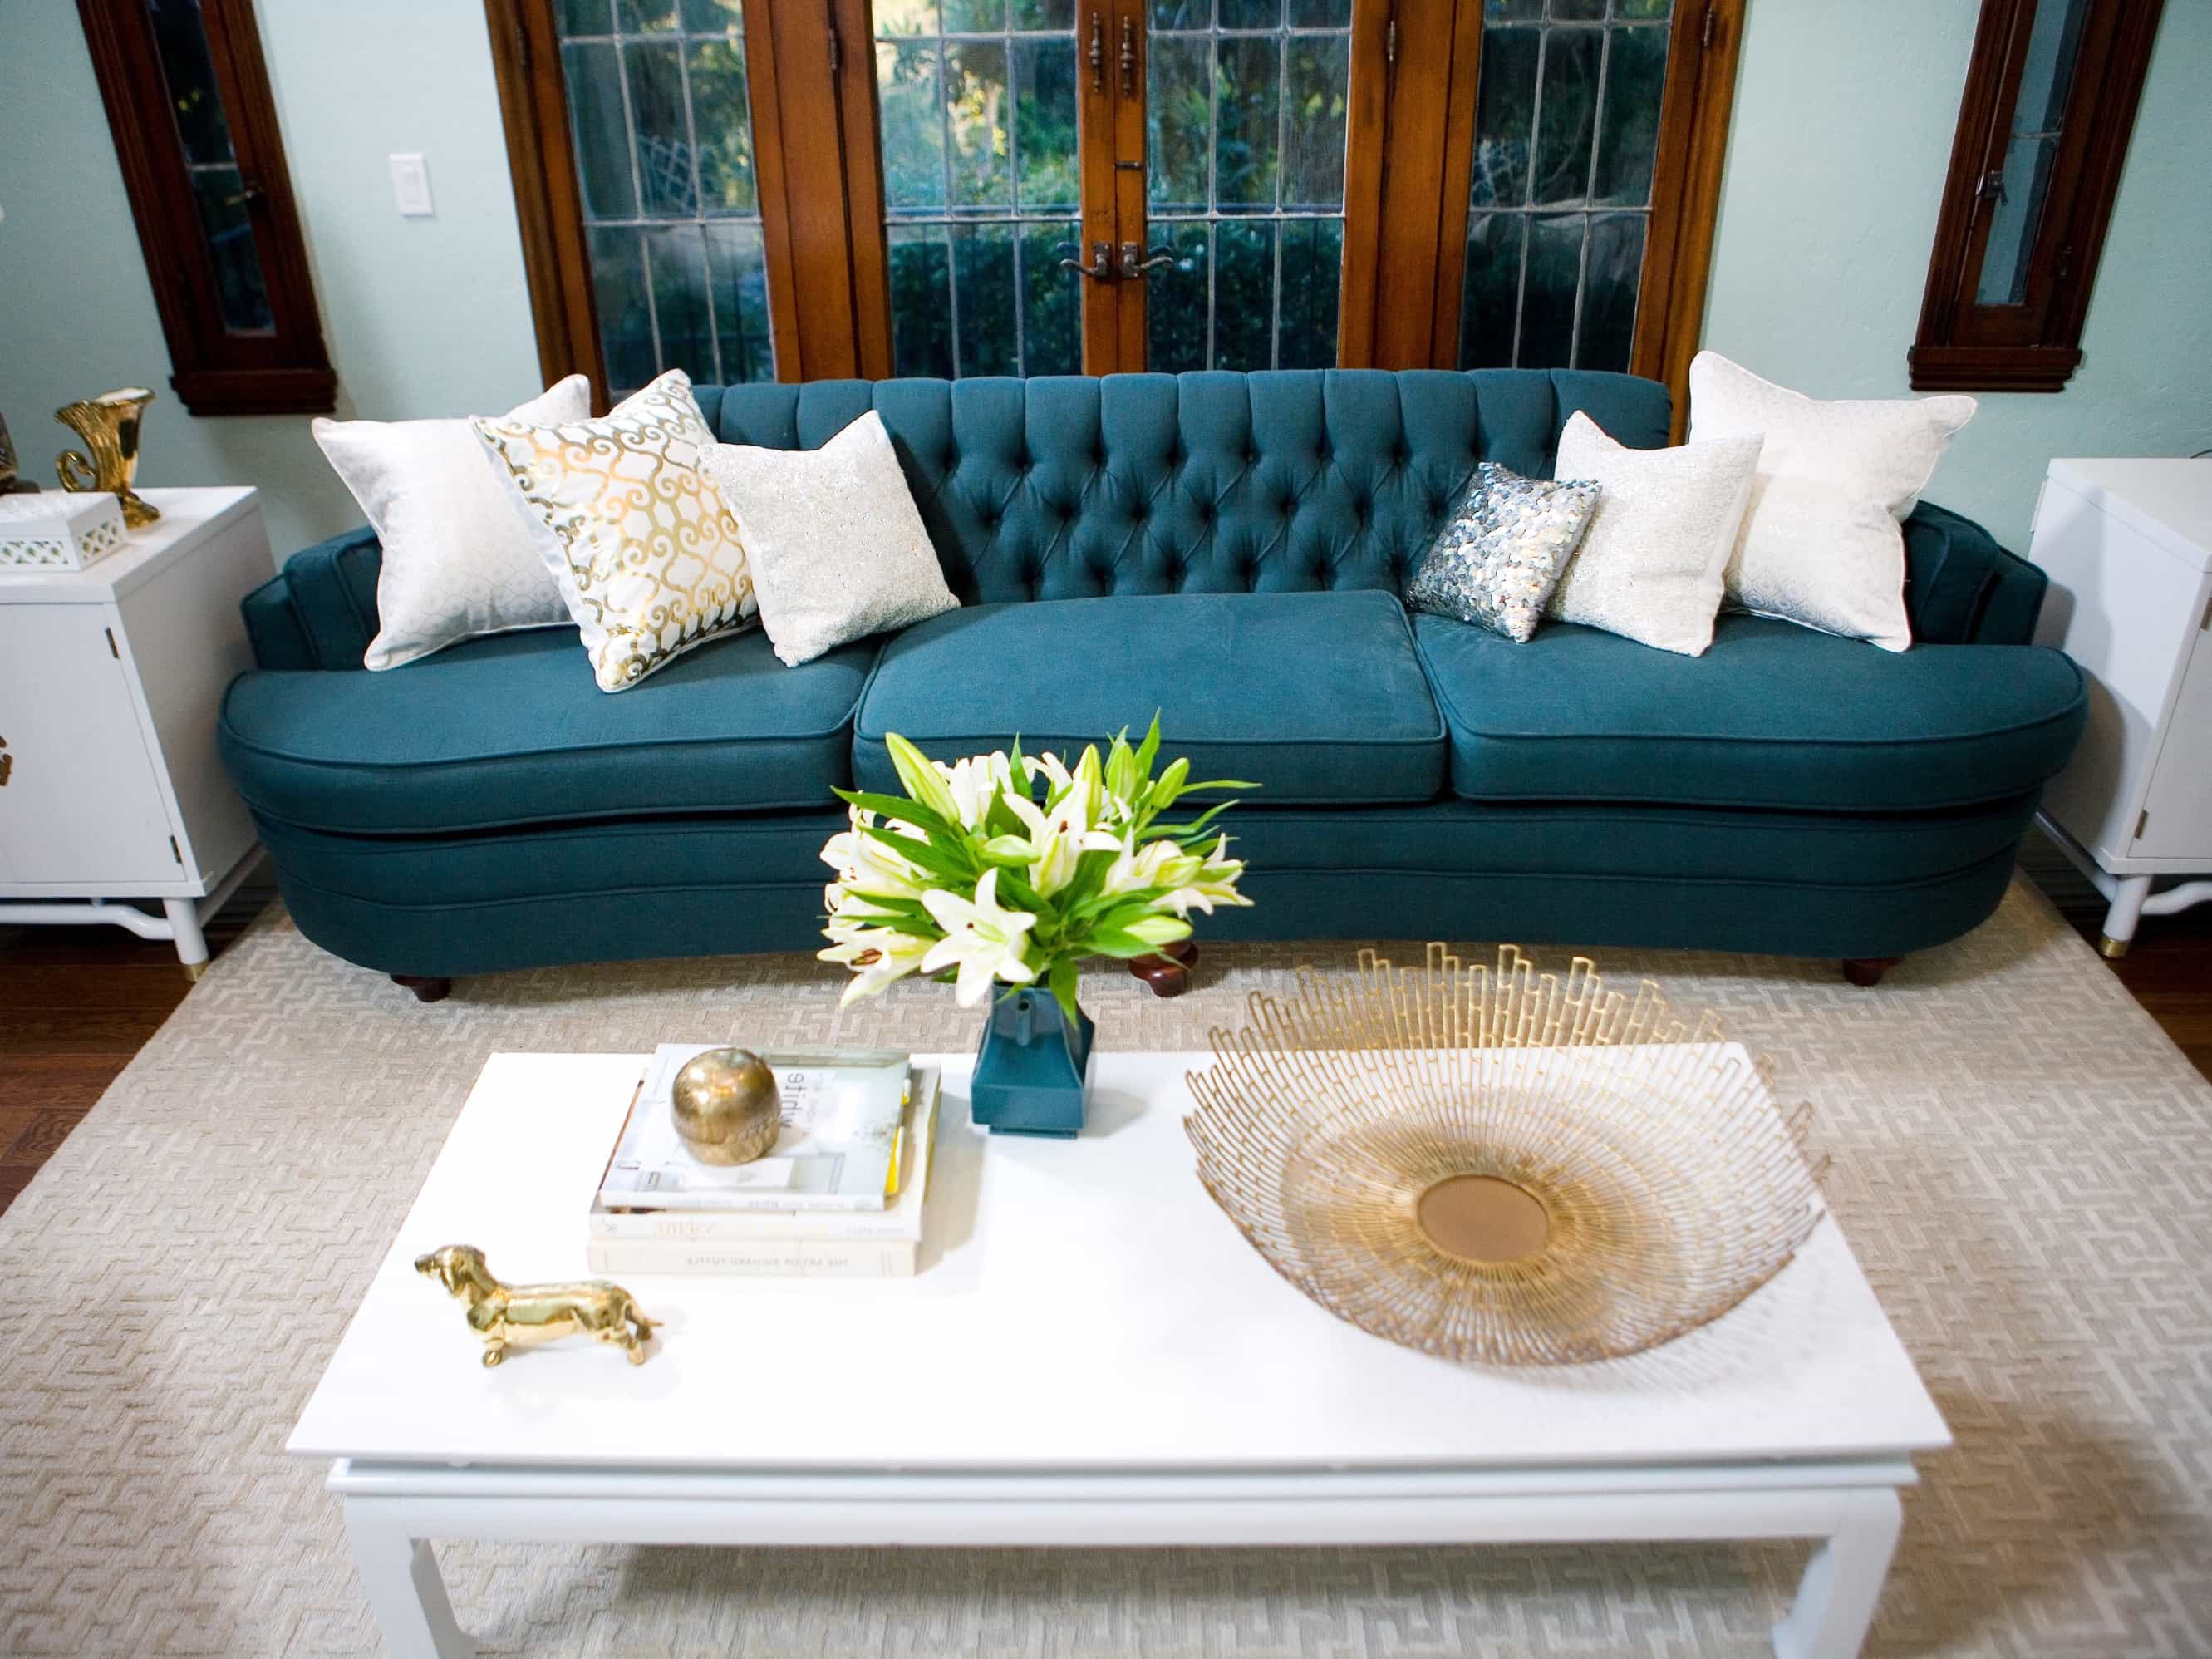 Featured Image of Living Room With Blue Sofa And White Coffee Table